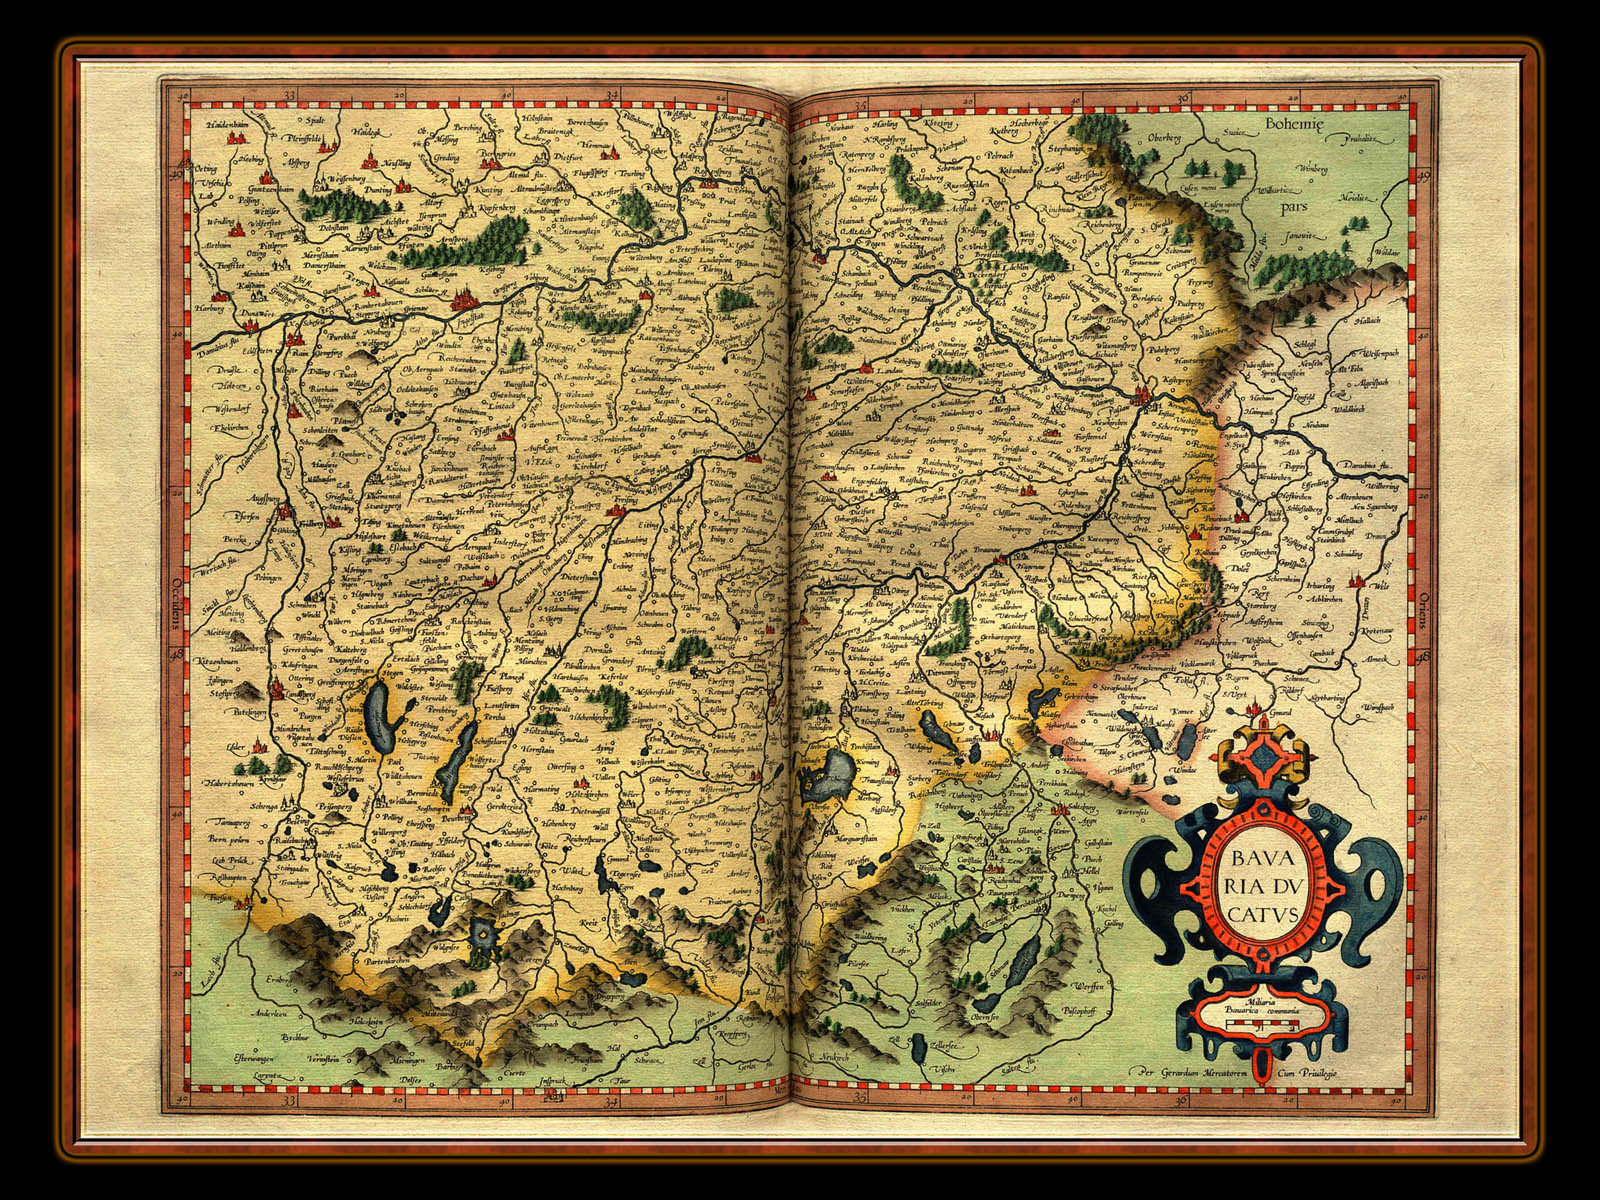 """Gerhard Mercator 1595 World Atlas - Cosmographicae"" - Wallpaper No. 32 of 106. Right click for saving options."